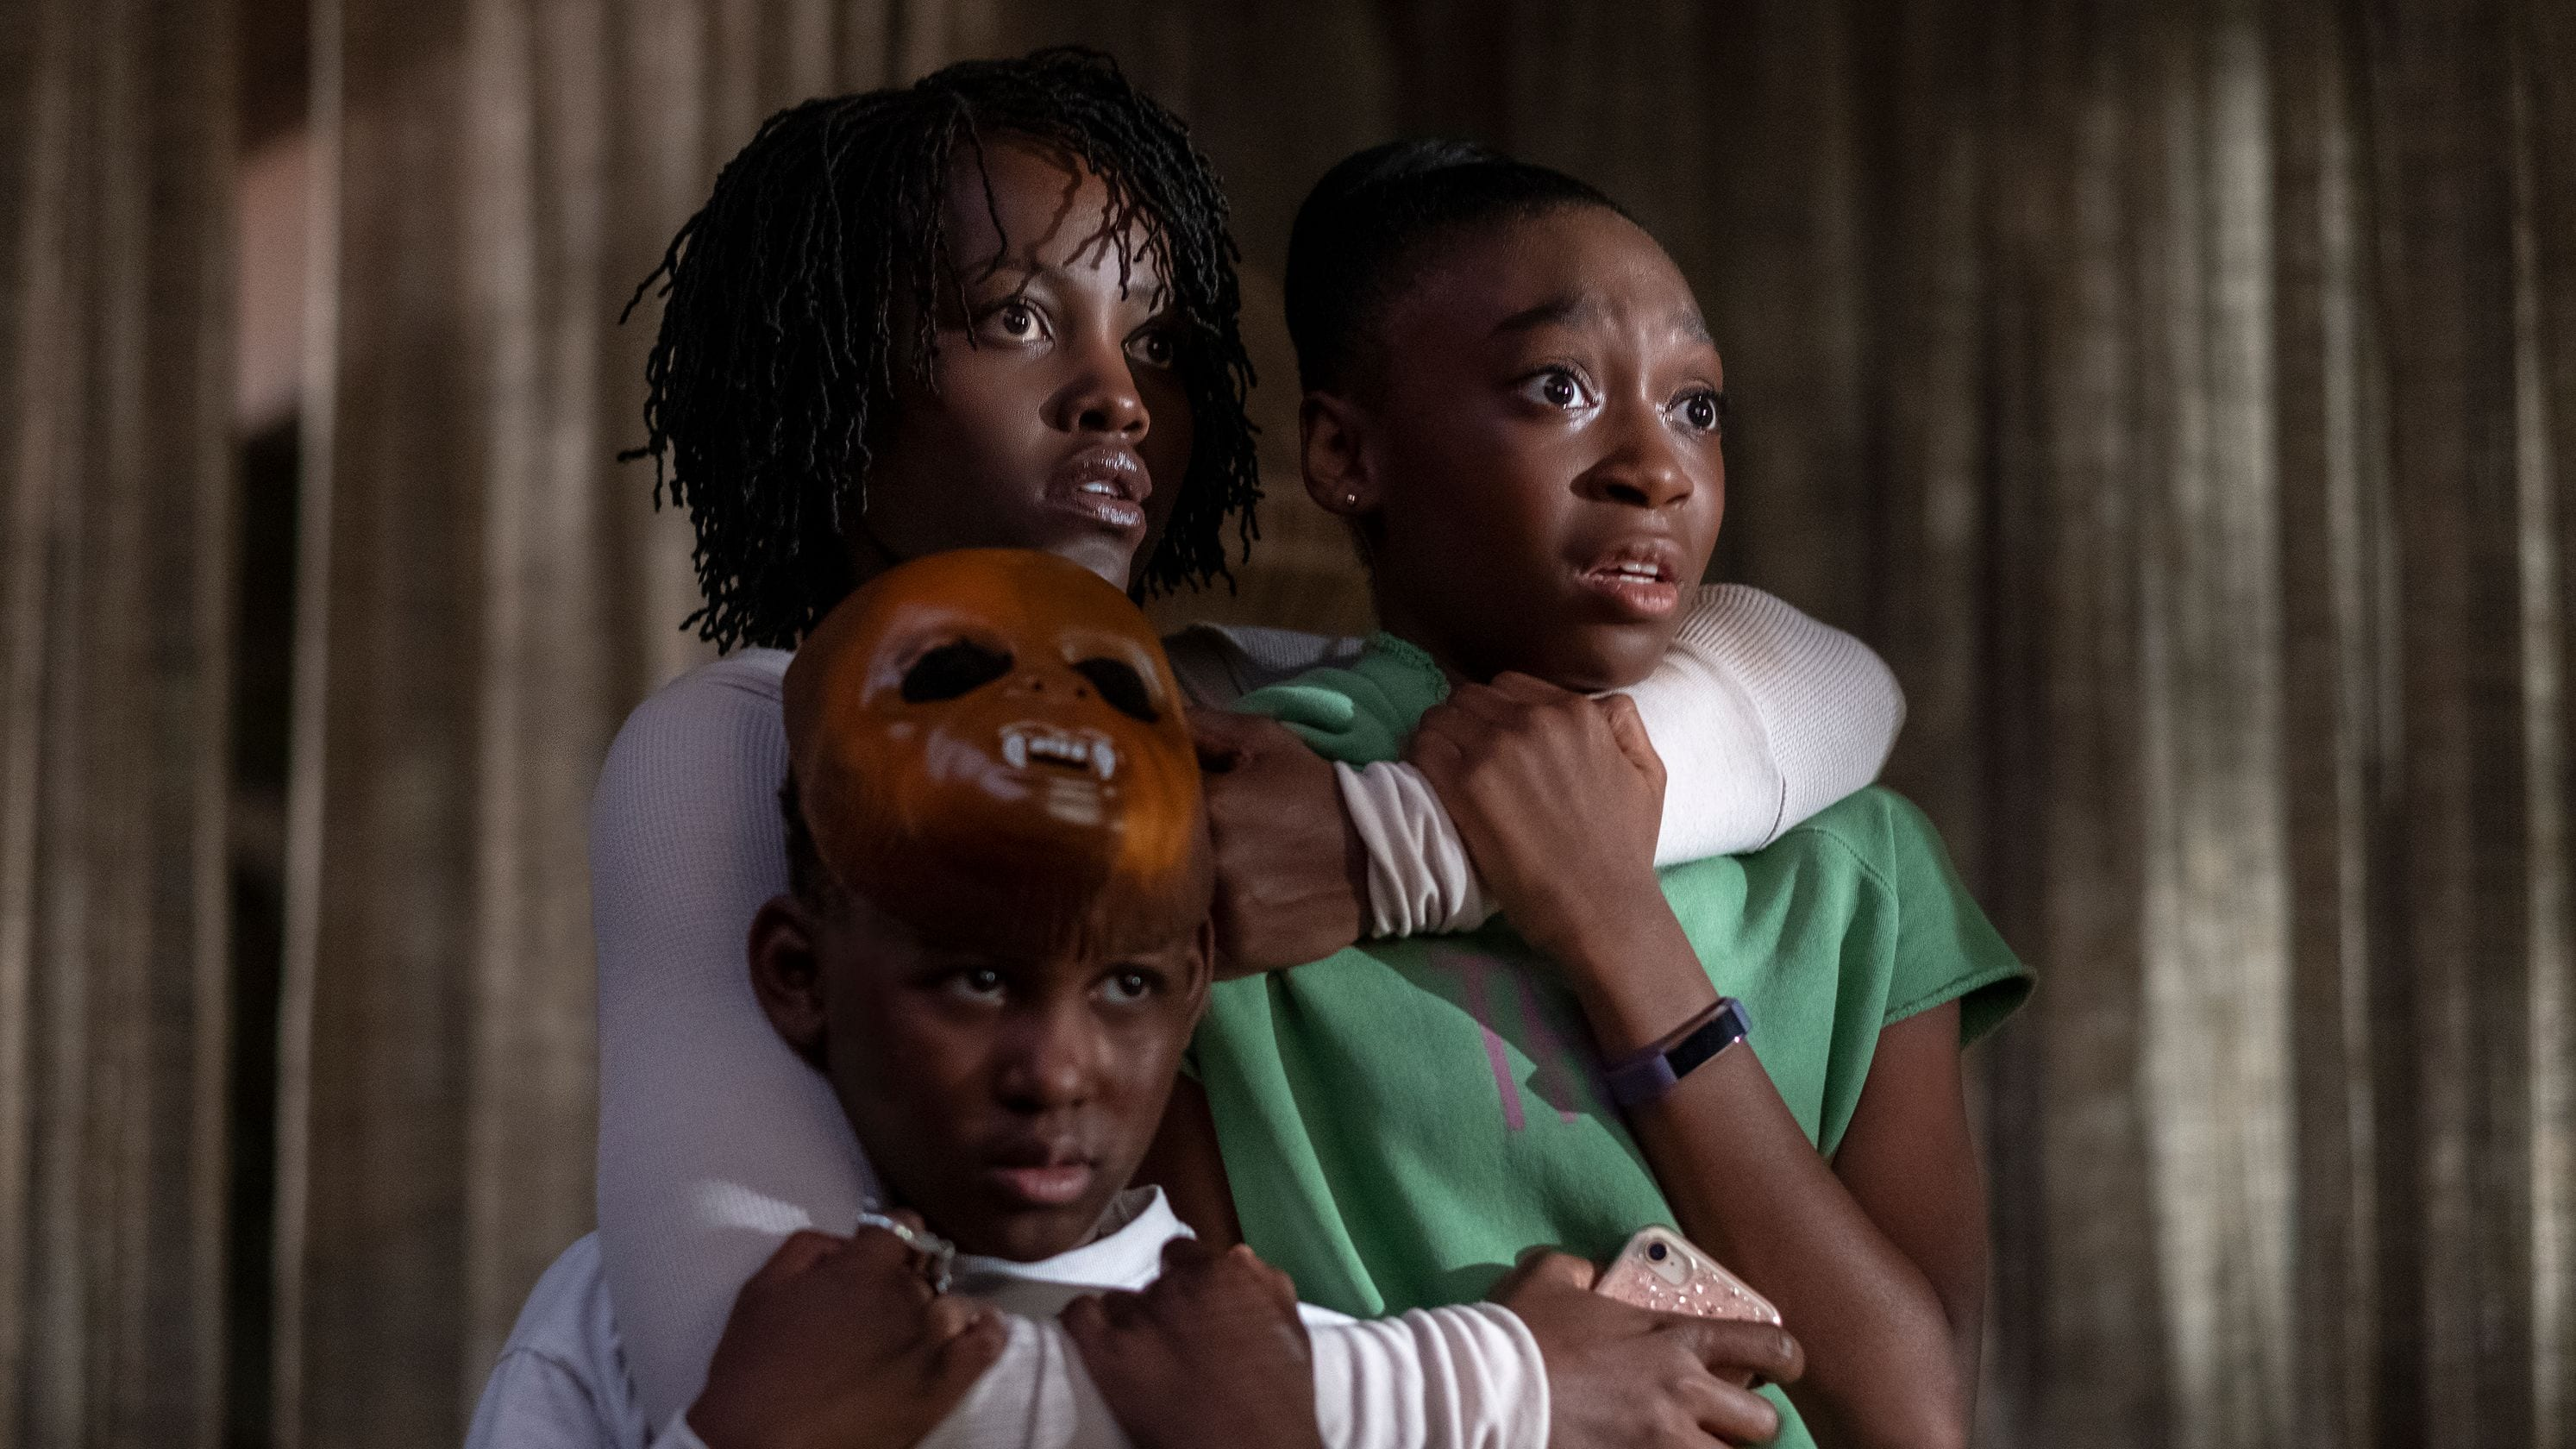 Jordan Peele's 'Us' Gross $7.4 Million on Thursday Opening Night